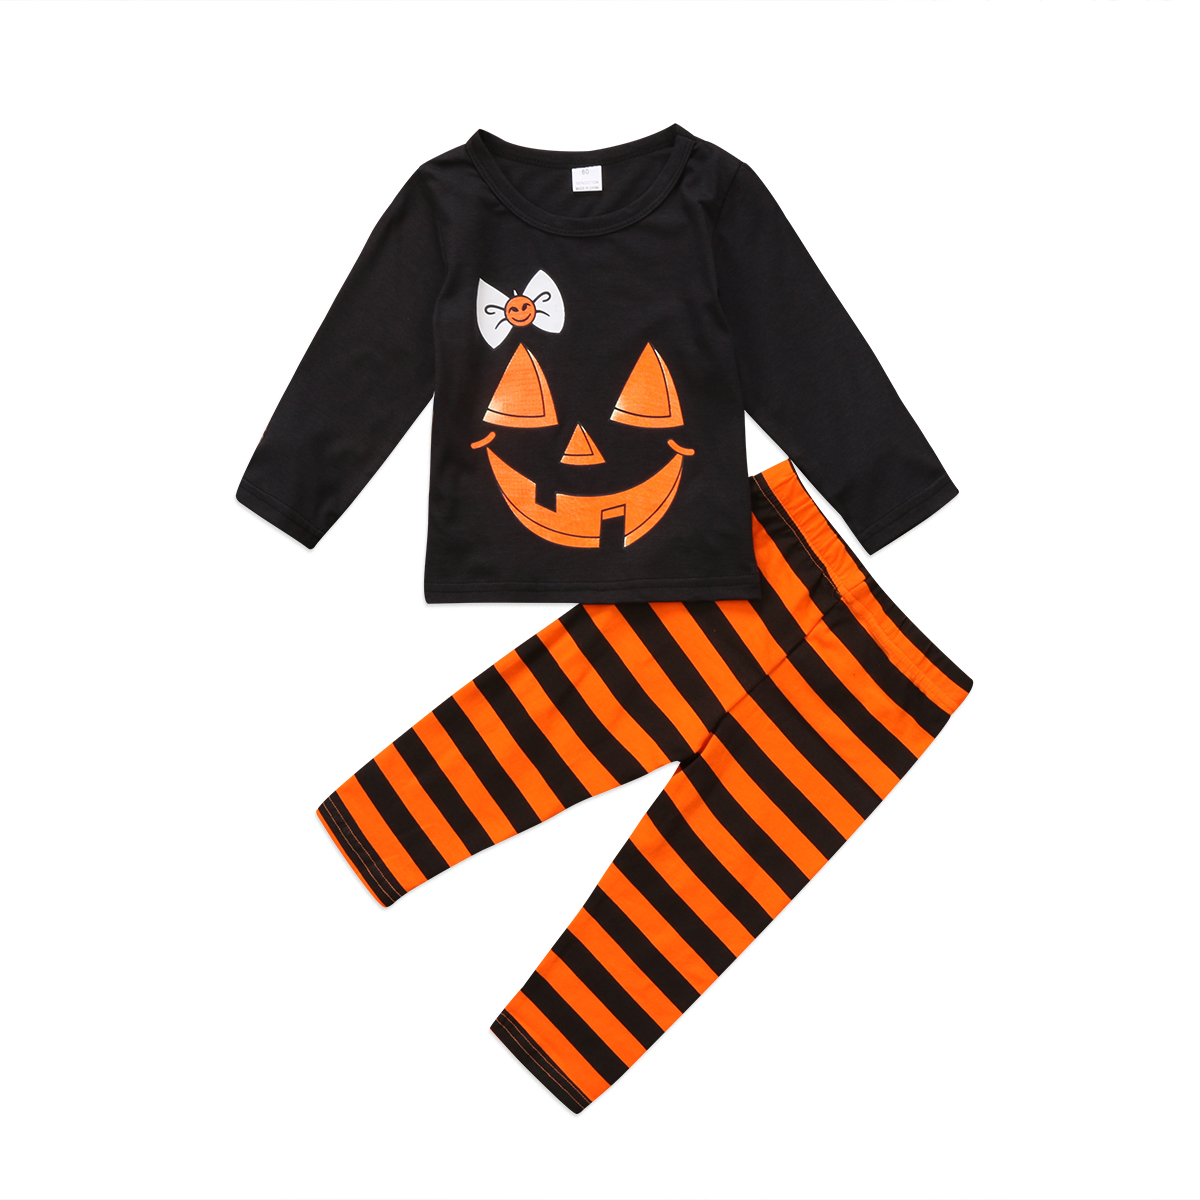 Toddler Baby Kids Girl Halloween Clothes Set Long Sleeve Print T-shirt Tops+Long Stripe Pants 2017 Newest Outfit Set